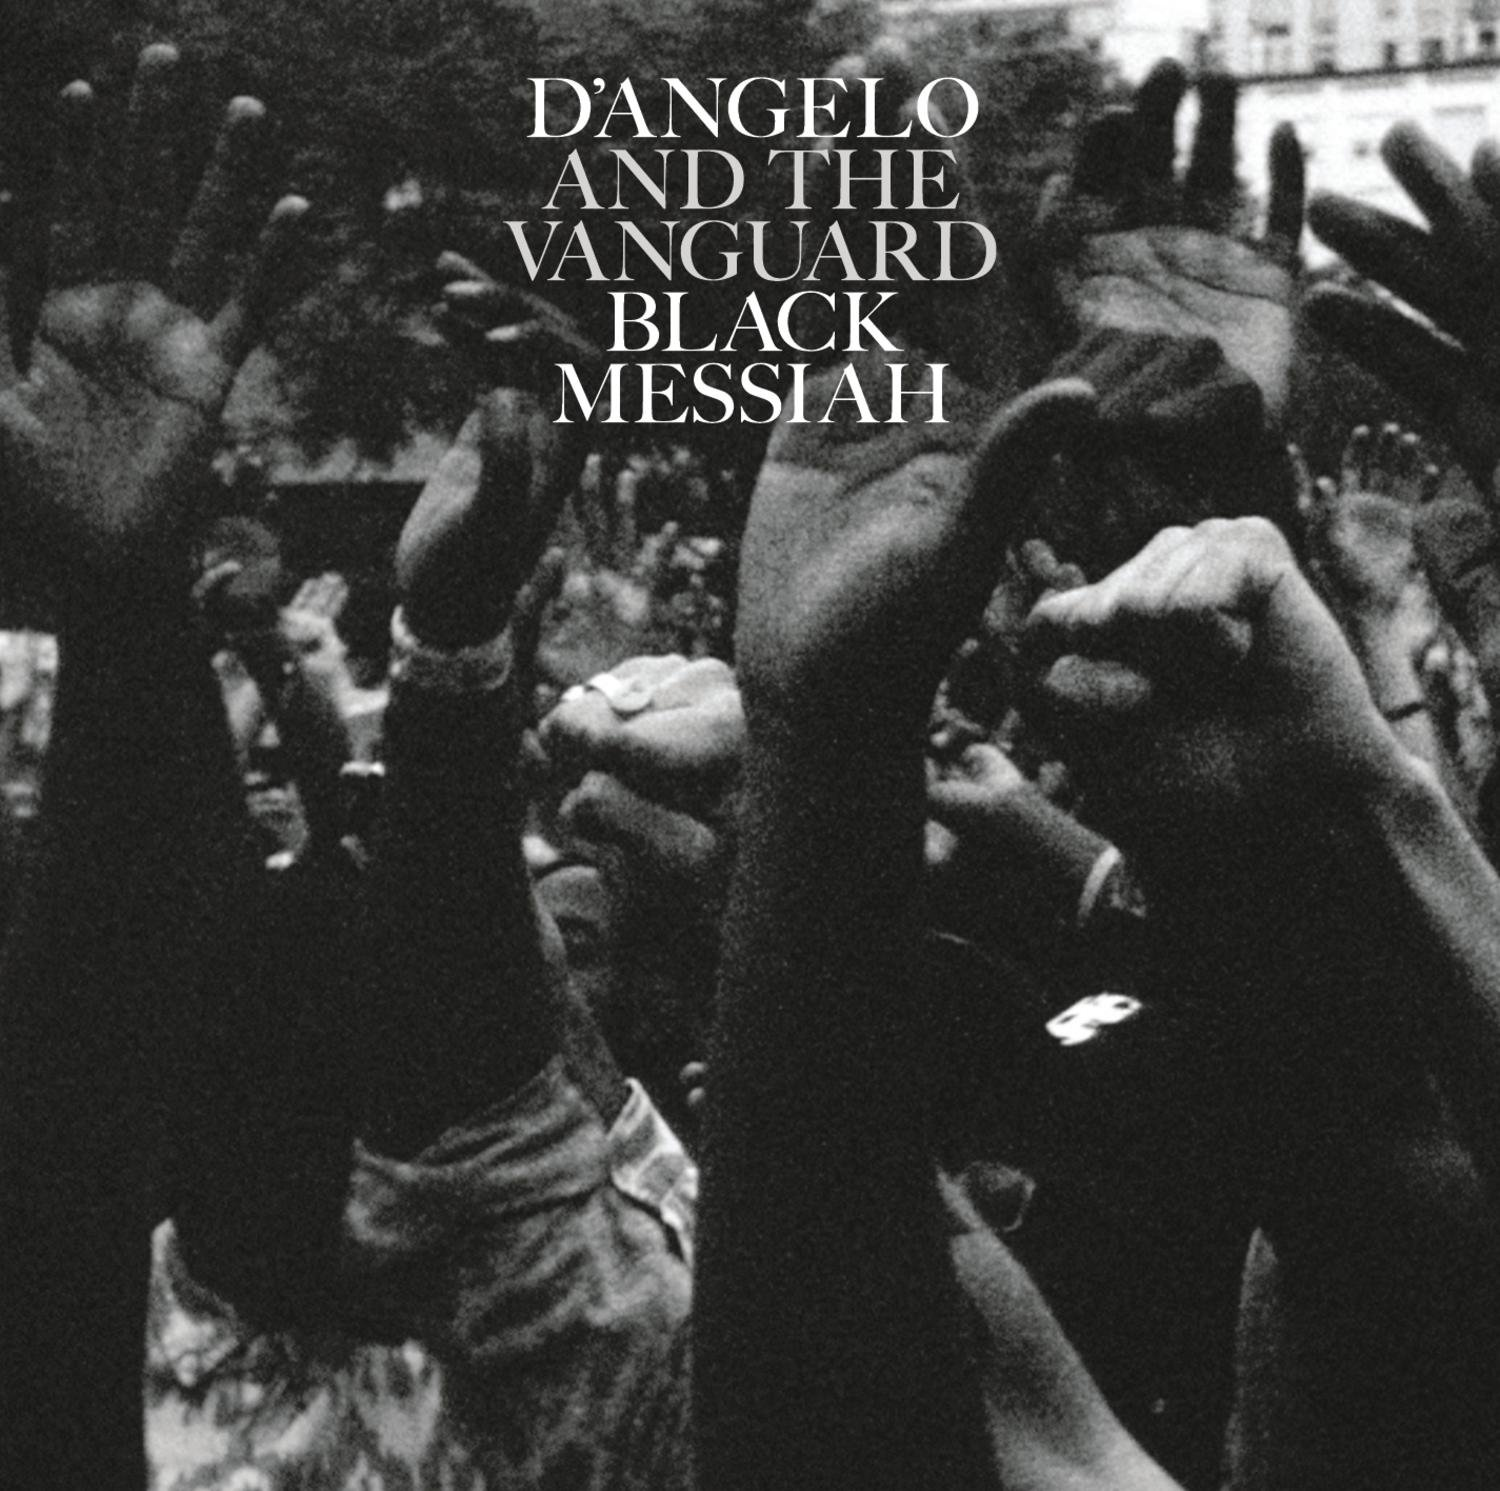 D'Angelo and The Vanguard - DangelonAnd the Vanguard Black Messiah -  Amazon.com Music